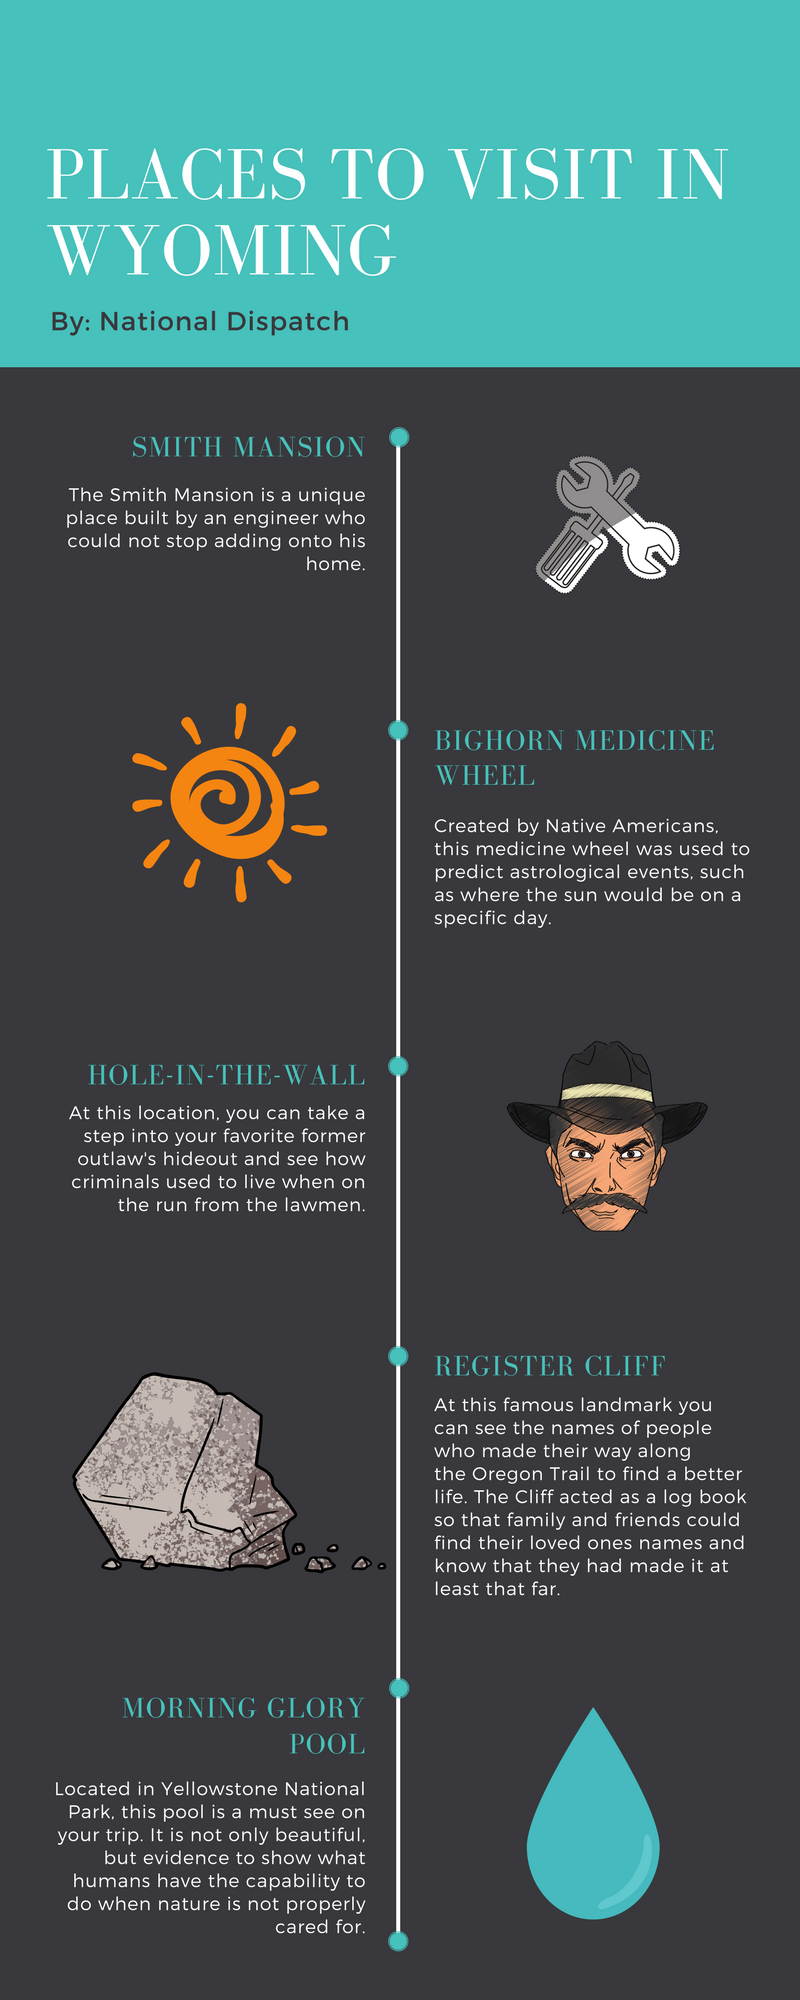 Places to Visit in Wyoming Infographic